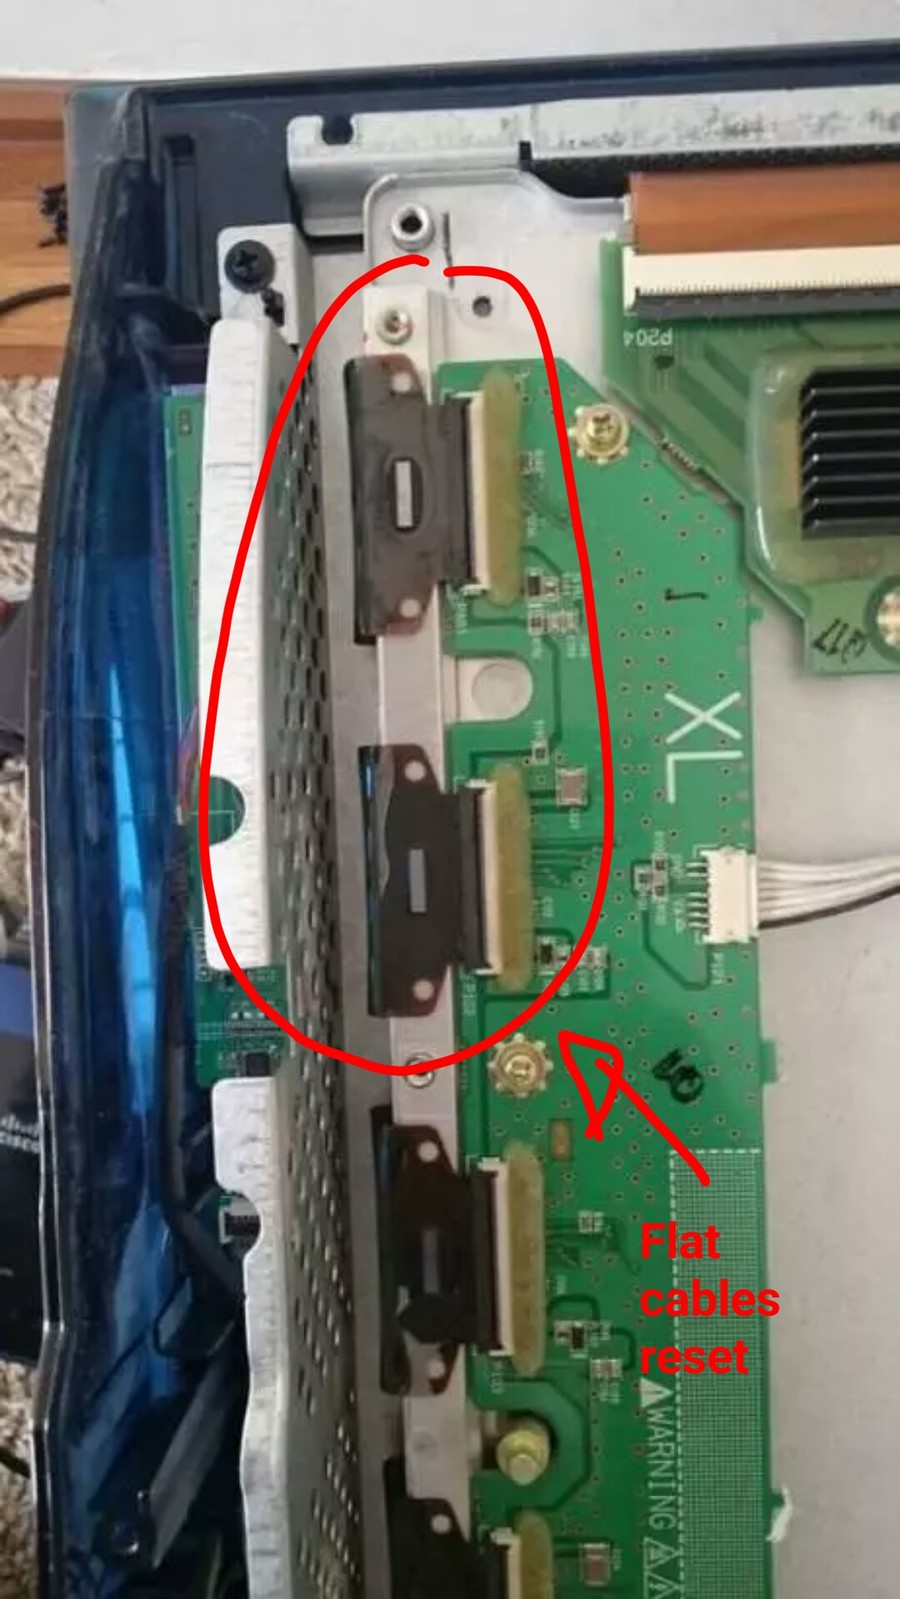 I Have An Lg Plasma It Has A Green Line Down The Center What 2005 50 Inch Tv Screen Circuit Boards In Back Of Work Goes All Into Removing Pane And Putting Together